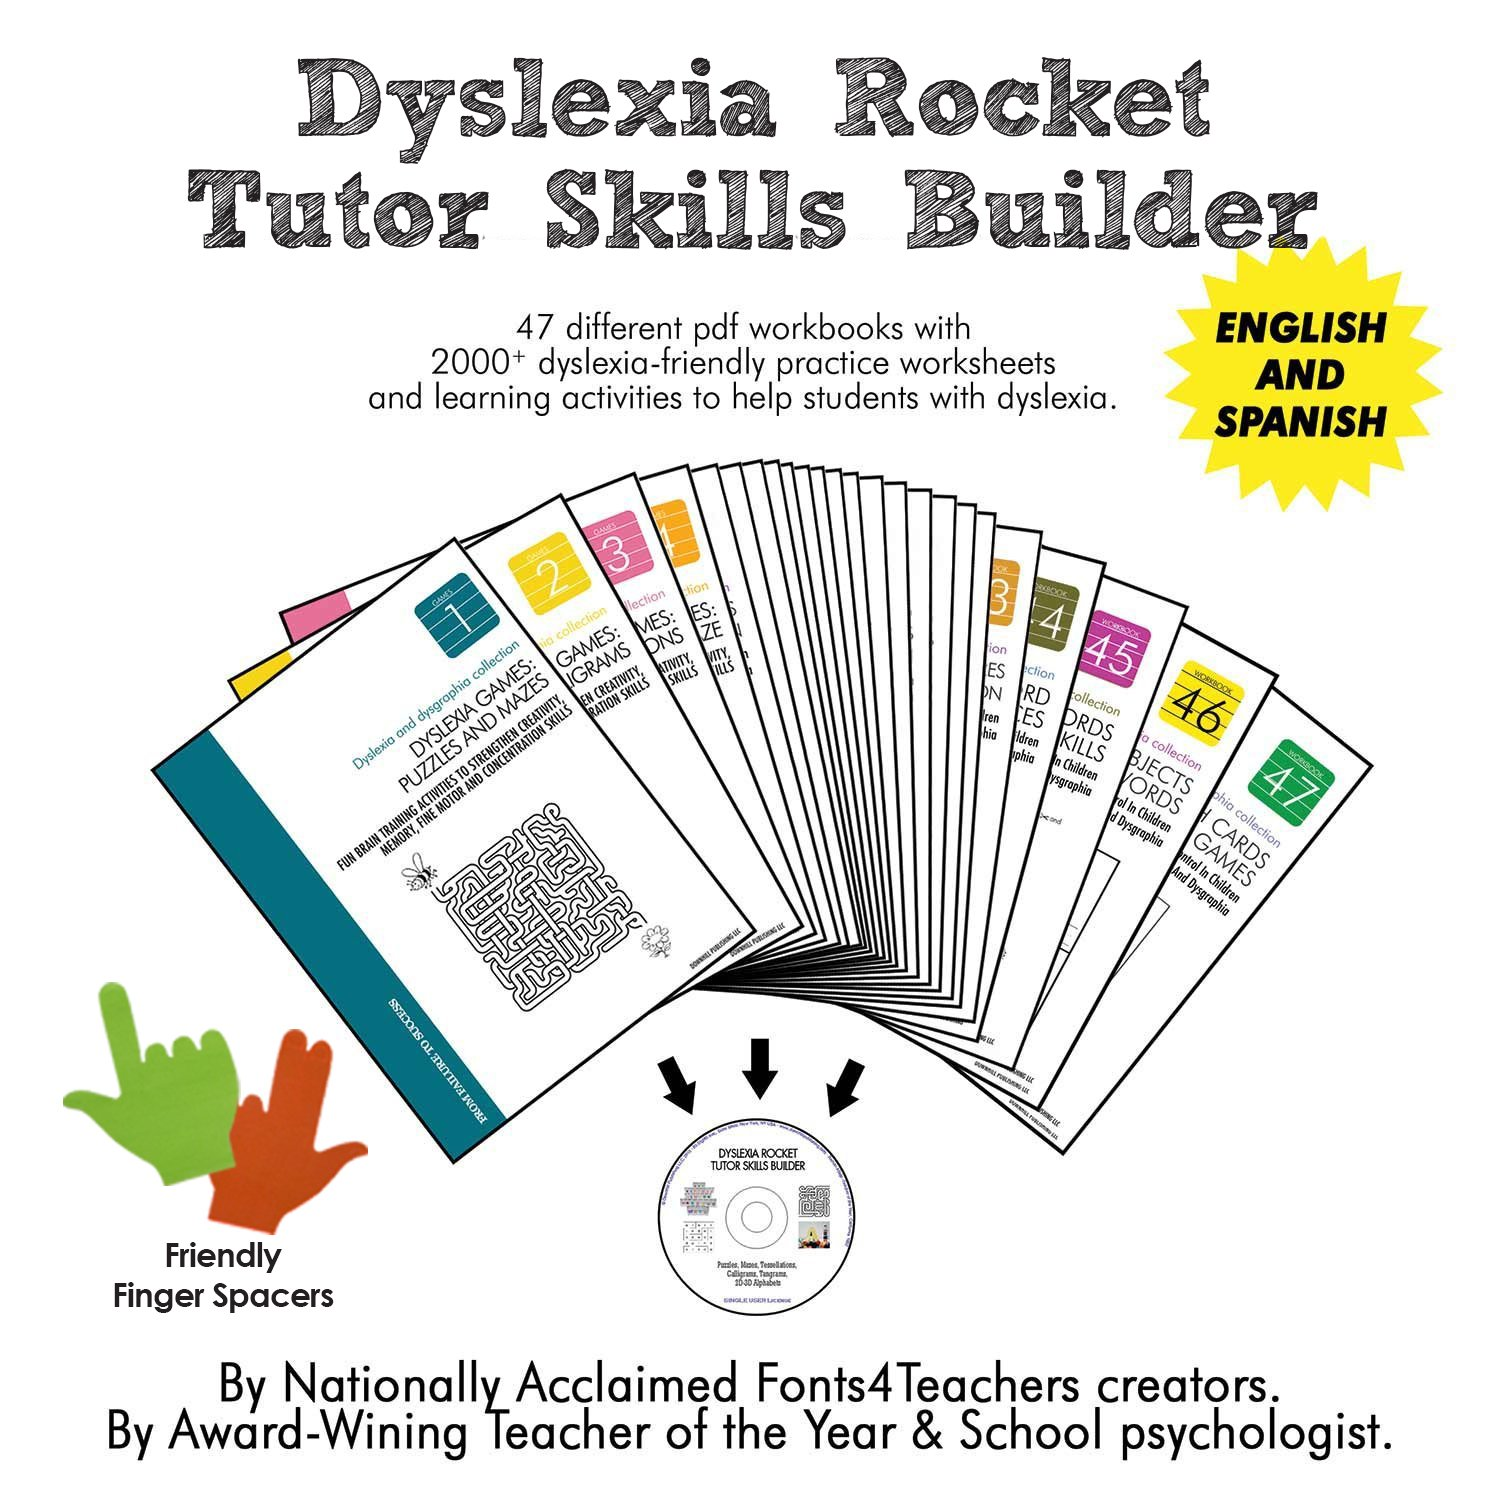 Worksheets Worksheets For Dyslexia amazon com dyslexia rocket tutor skills builder cd rom finger spacers games 47 printable workbooks 2000 pract